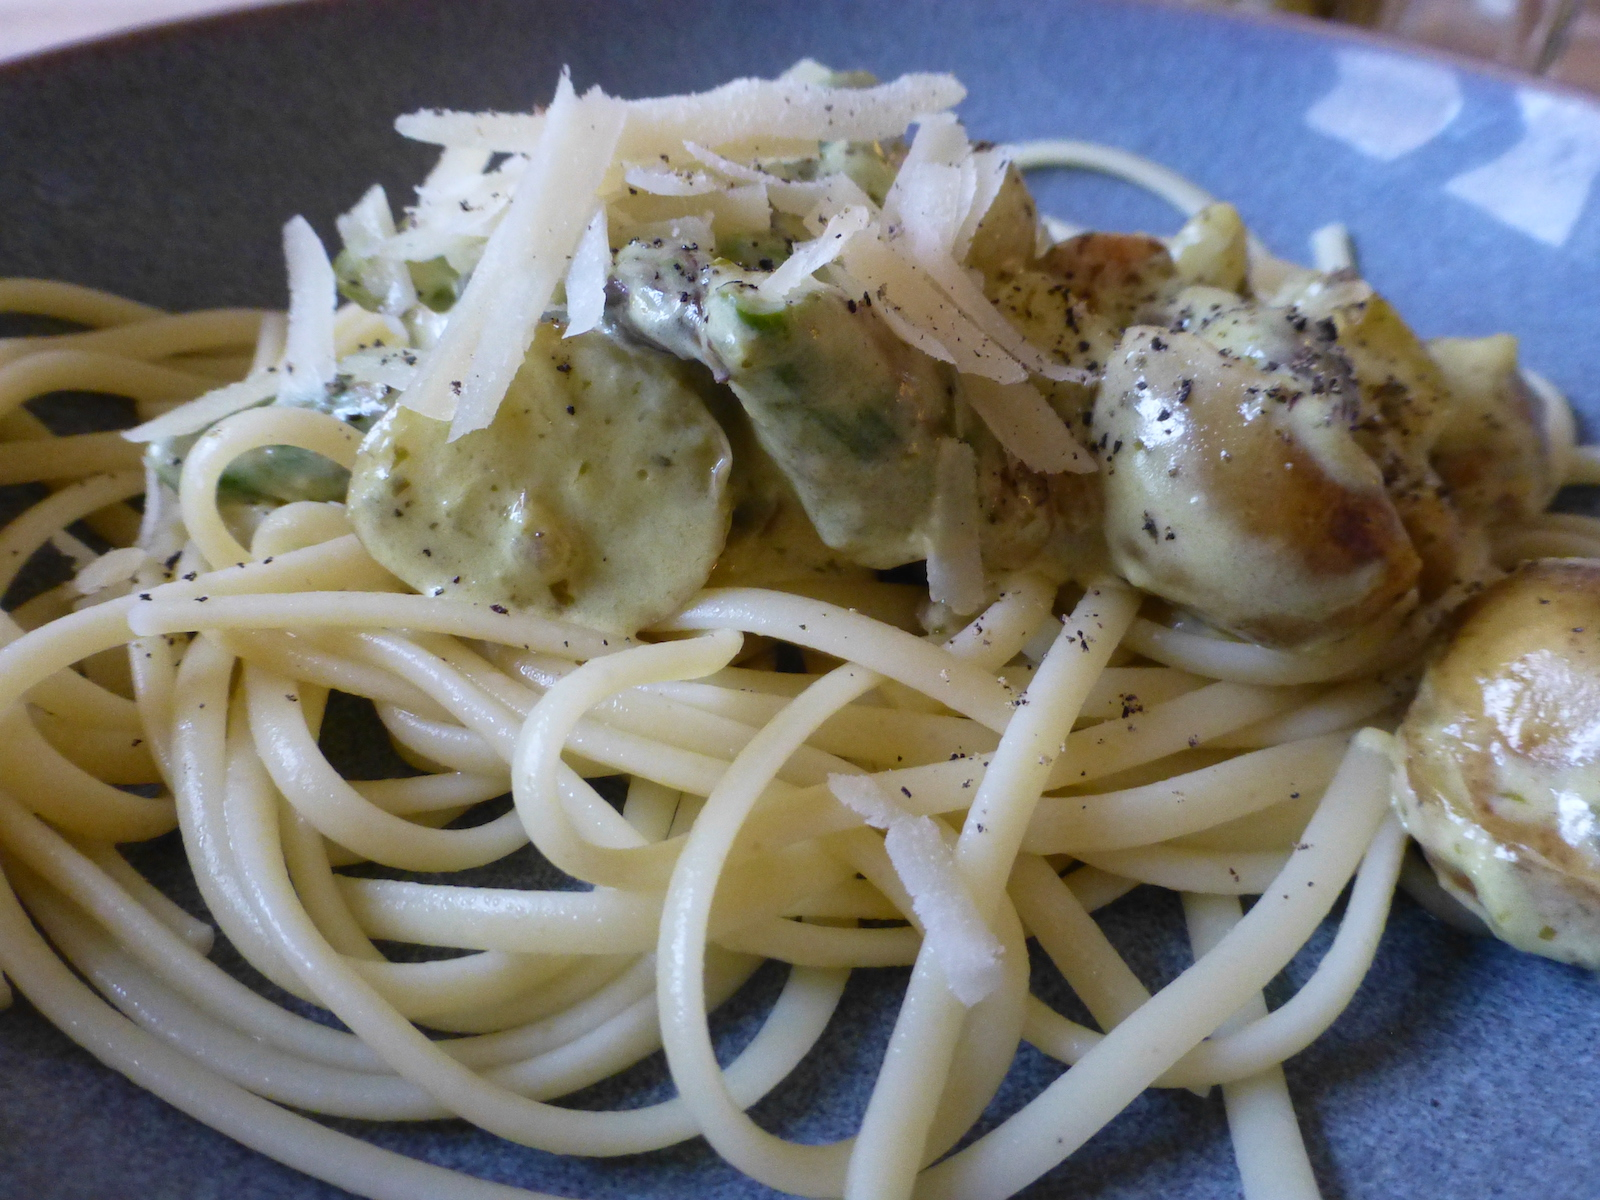 Linguine with cream, potatoes, asparagus and pesto